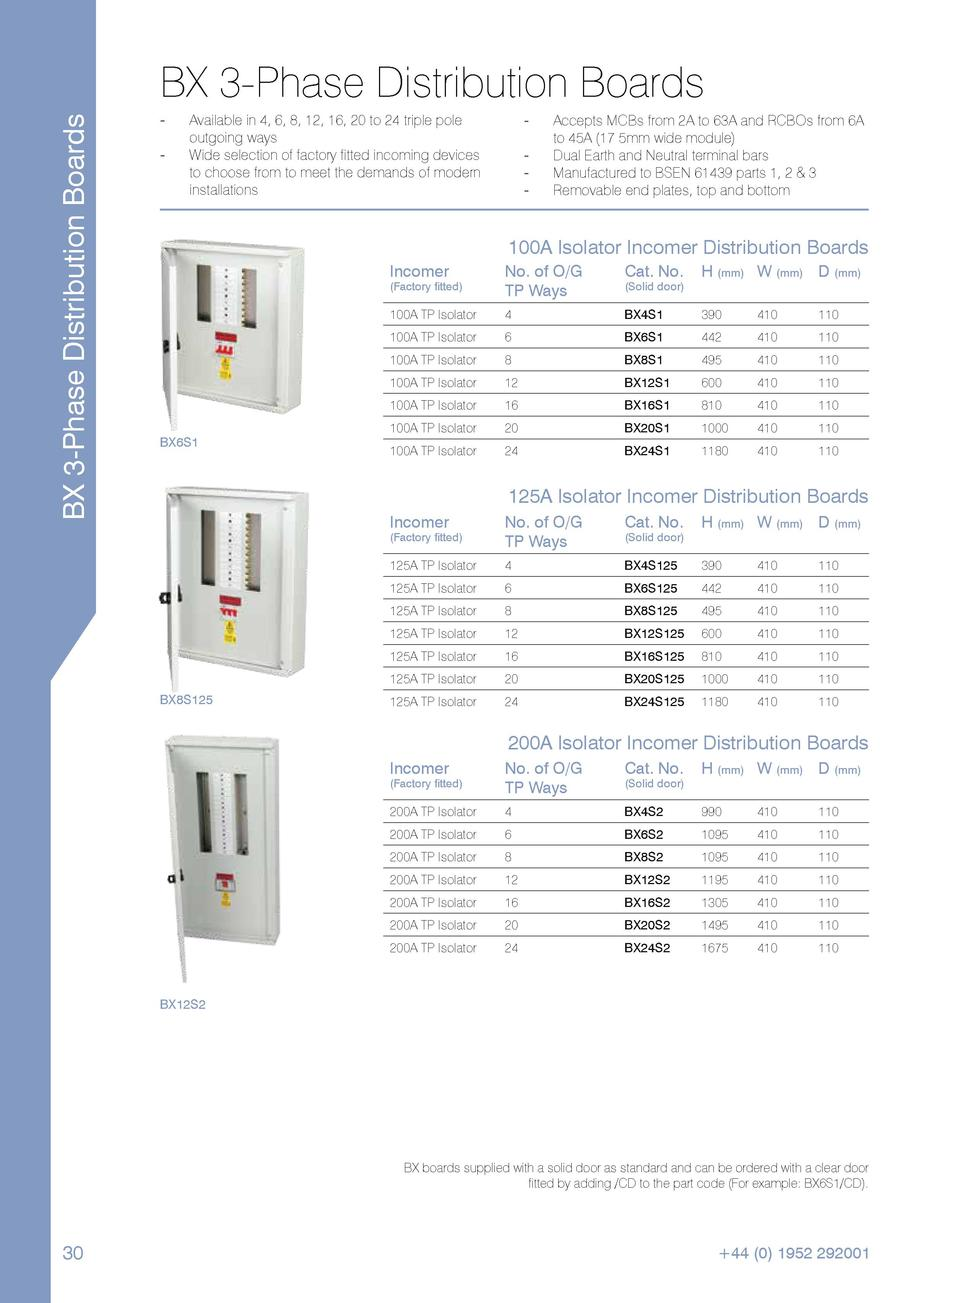 BX 3-Phase Distribution Boards  BX 3-Phase Distribution Boards ---  --  Available in 4, 6, 8, 12, 16, 20 to 24 triple pole...